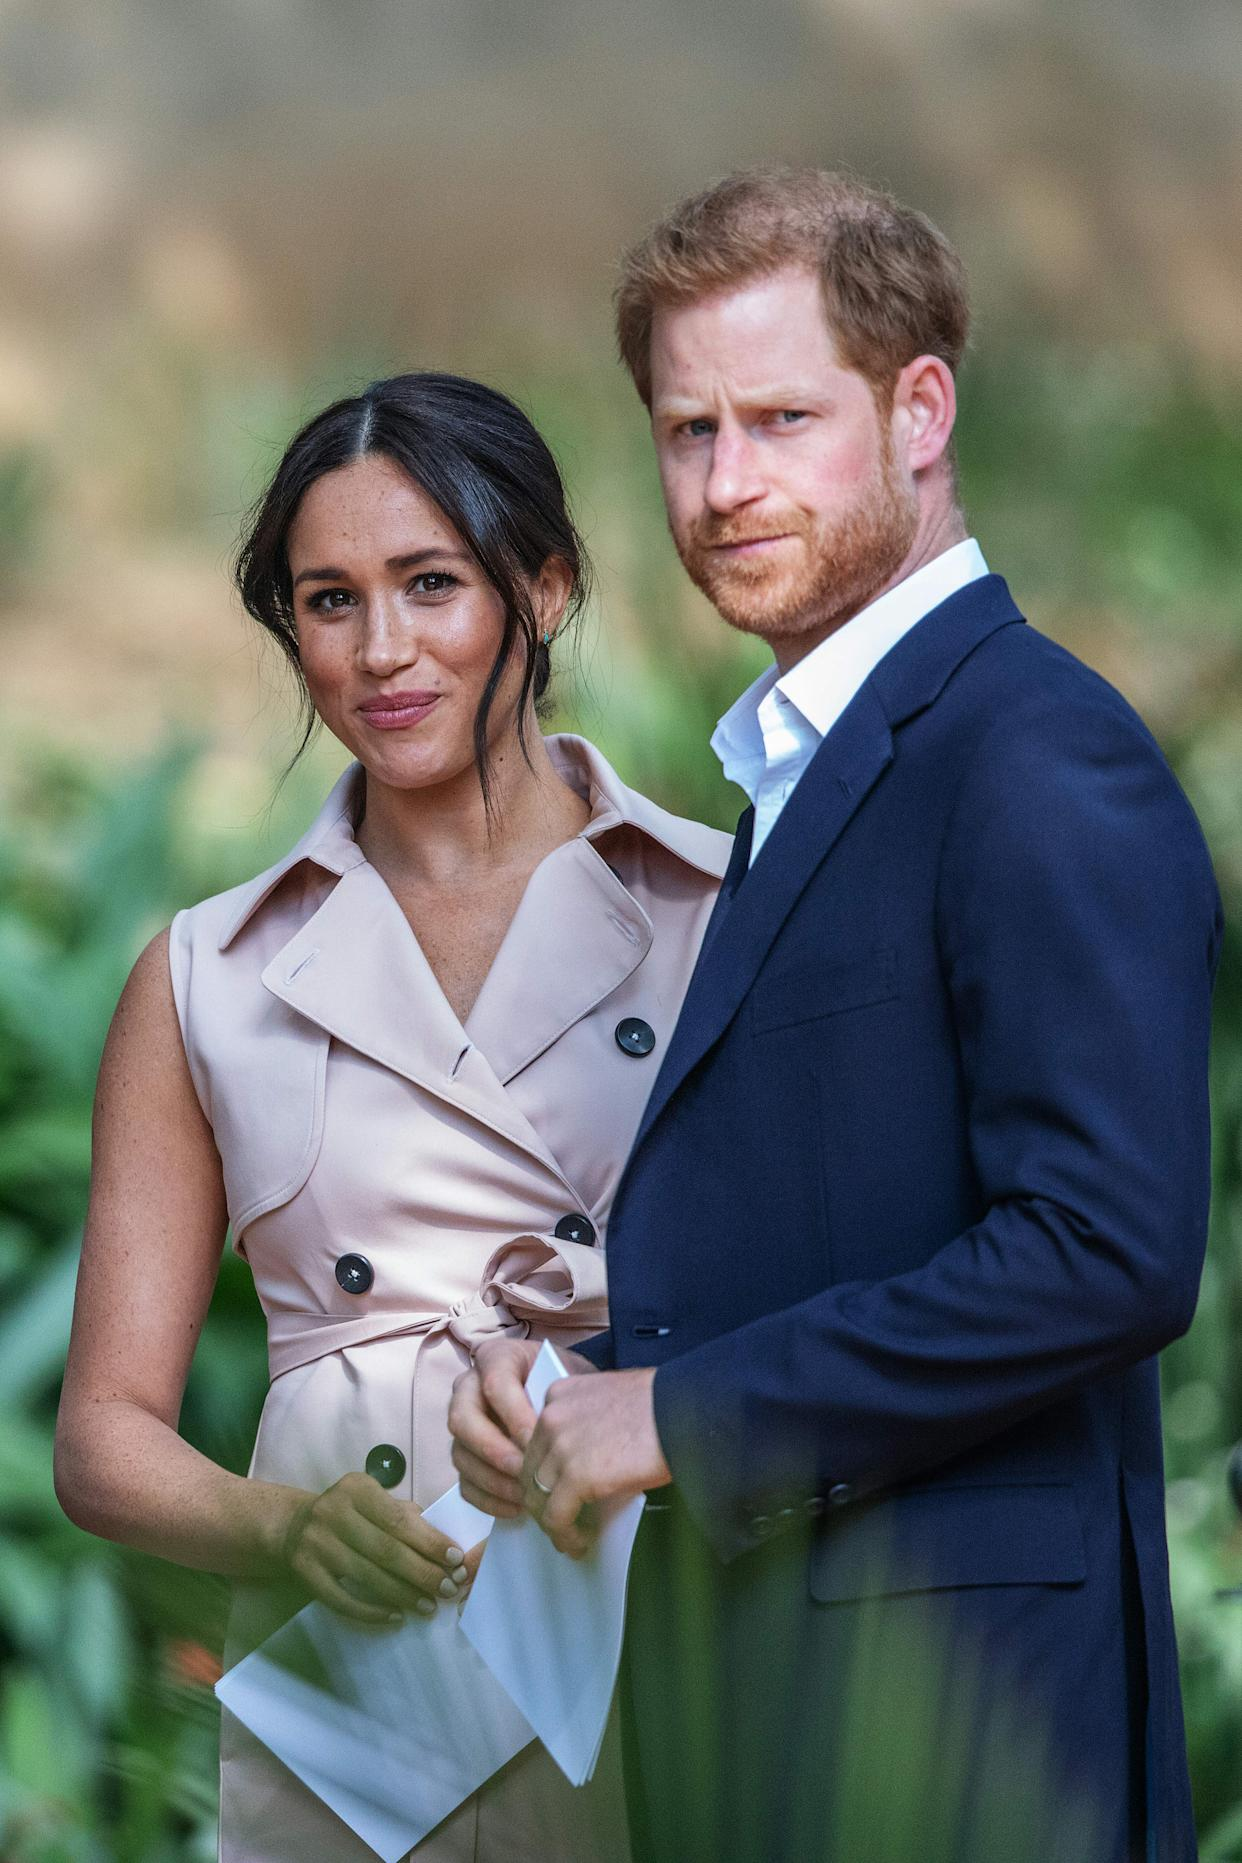 Britain's Prince Harry, Duke of Sussex(R) and Meghan, the Duchess of Sussex(L) arrive at the British High Commissioner residency in Johannesburg where they  will meet with Graca Machel, widow of former South African president Nelson Mandela, in Johannesburg, on October 2, 2019. - Prince Harry recalled the hounding of his late mother Diana to denounce media treatment of his wife Meghan Markle, as the couple launched legal action against a British tabloid for invasion of privacy. (Photo by Michele Spatari / AFP) (Photo by MICHELE SPATARI/AFP via Getty Images)